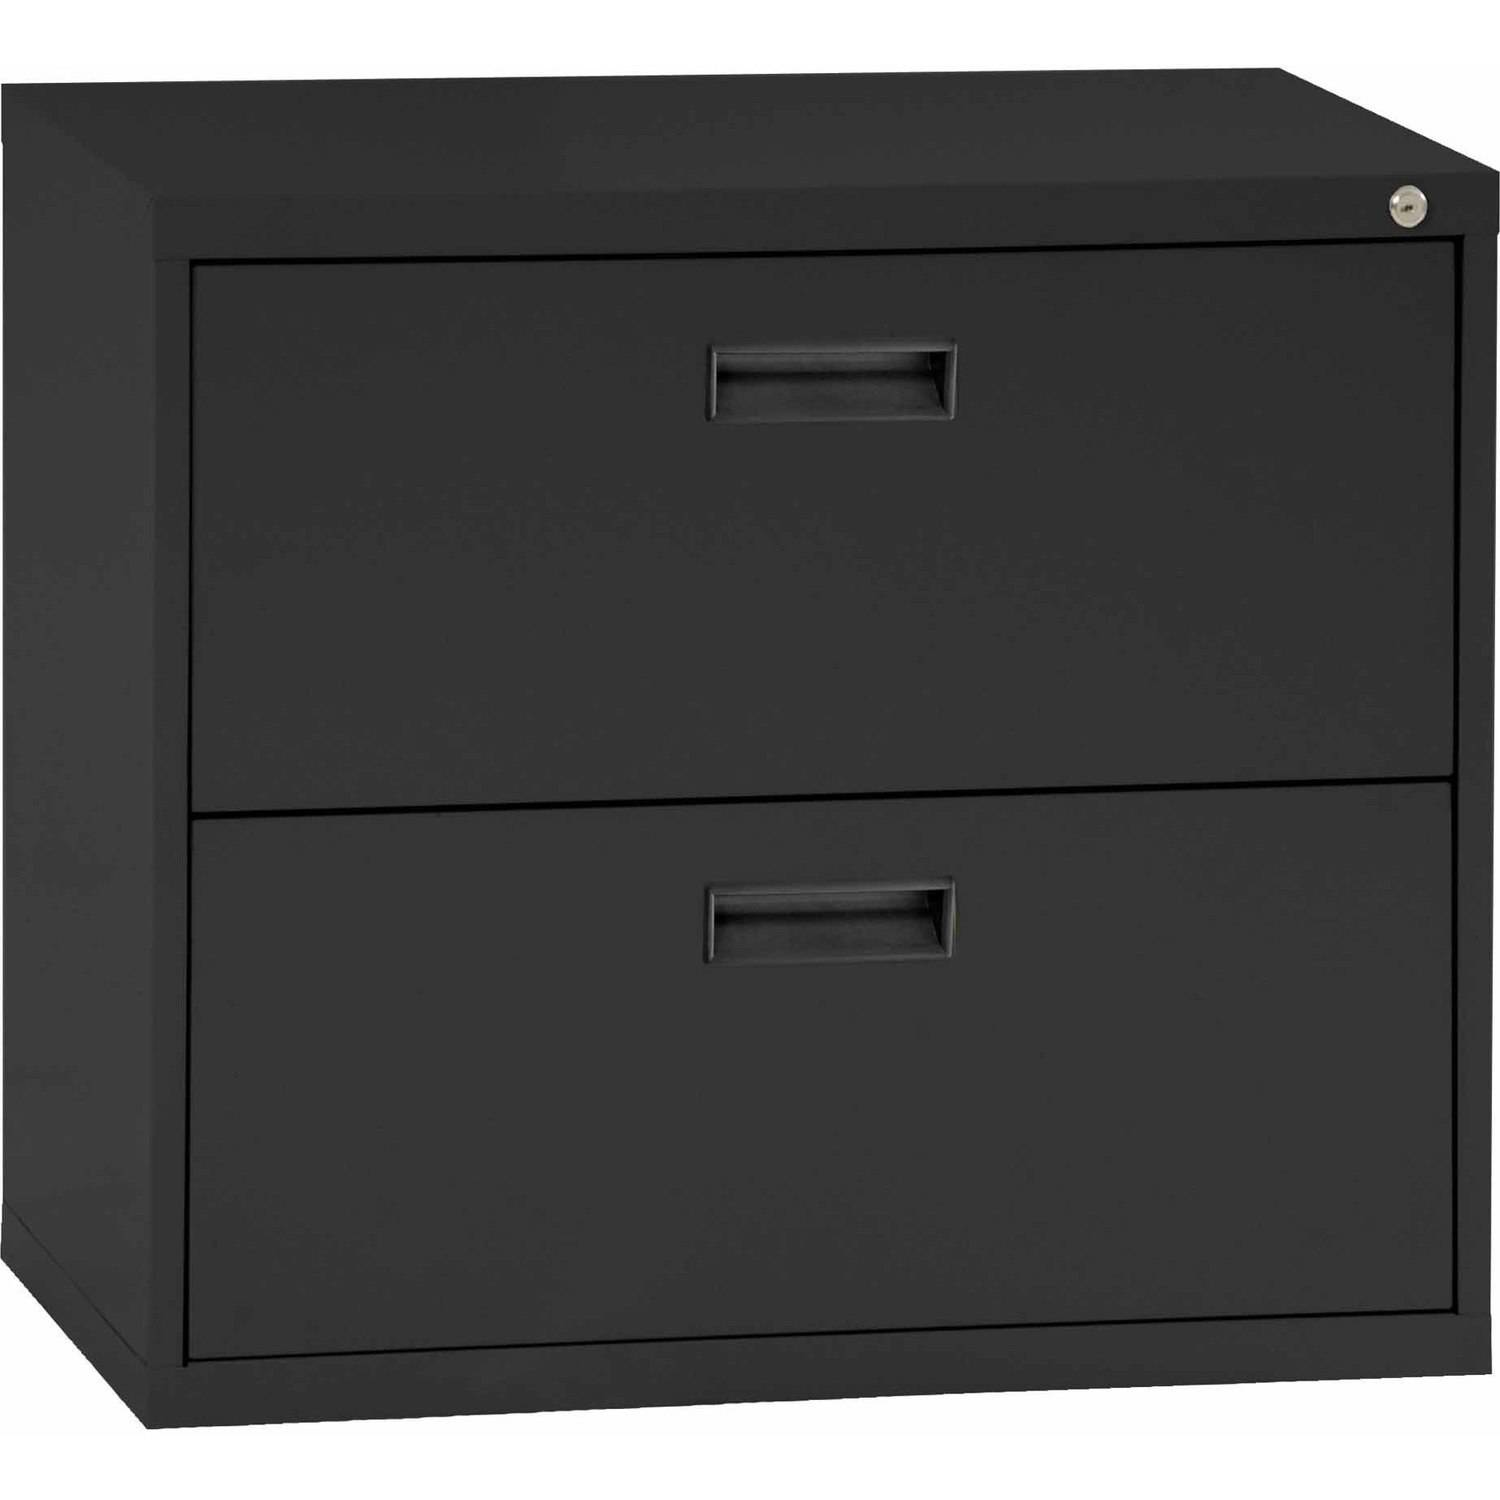 sandusky steel lateral file cabinet with plastic handle 2 drawers rh walmart com